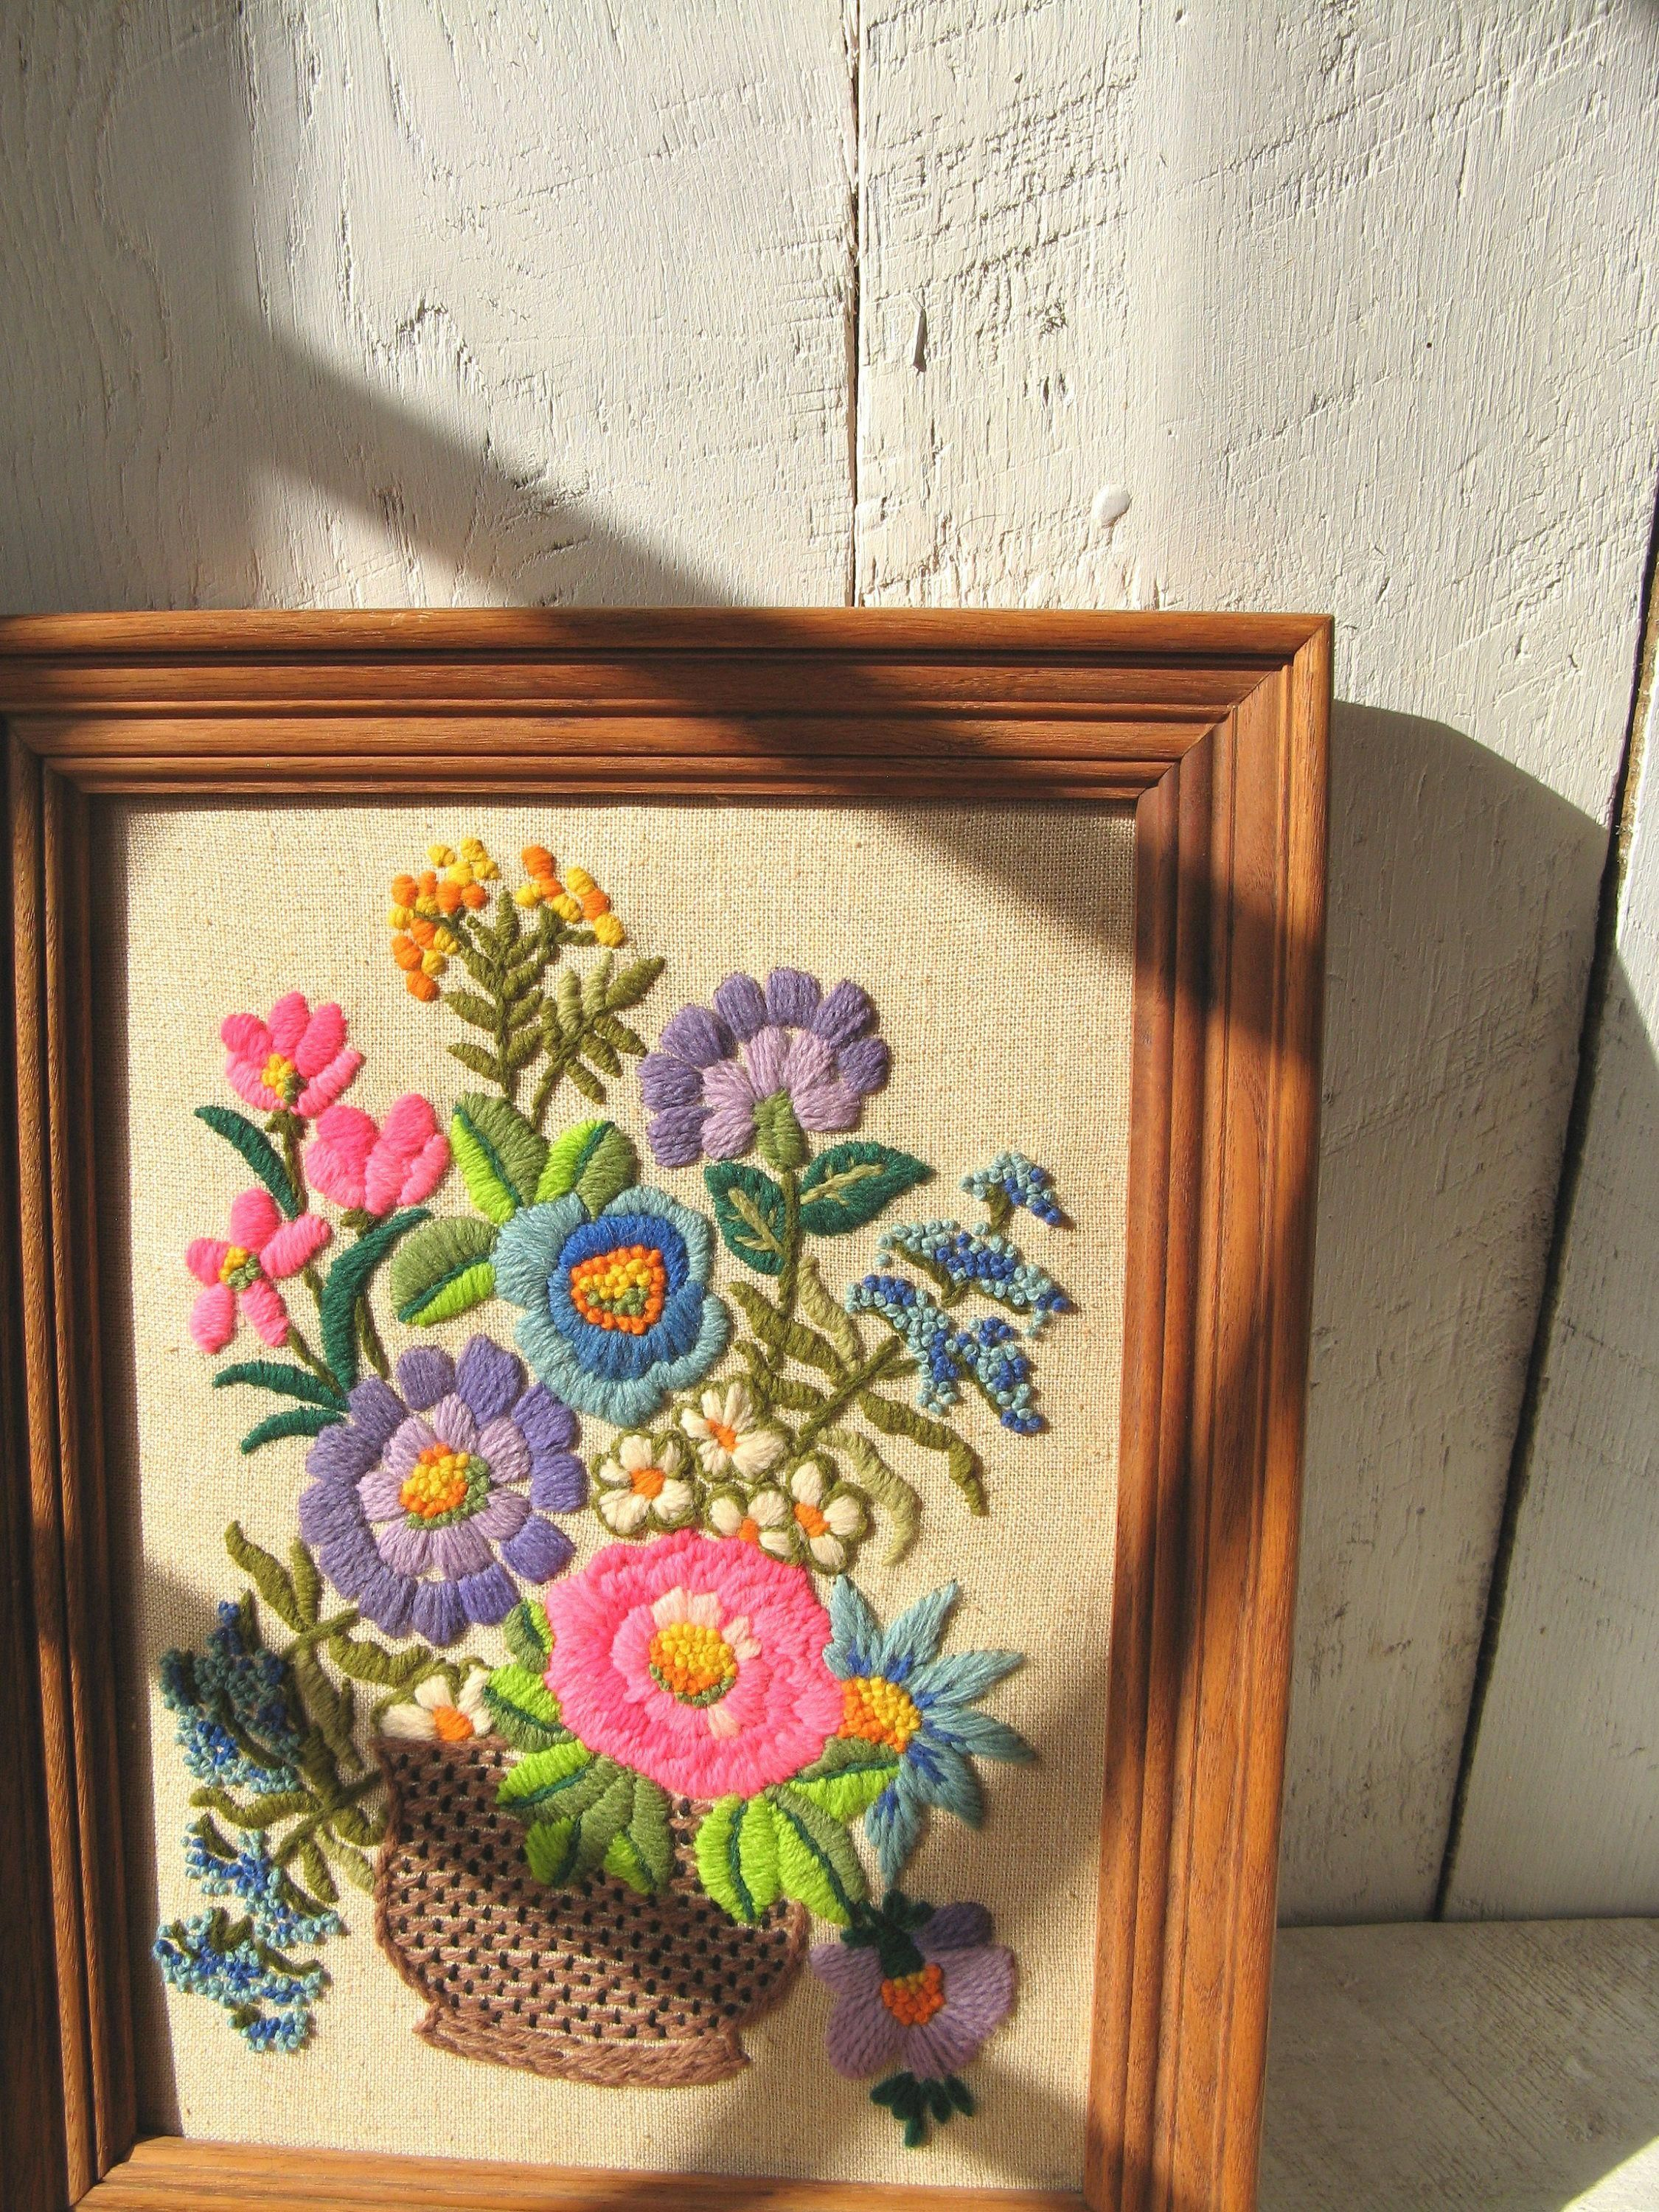 Large Framed Vintage Bright Floral Embroidery Wall Art 1970s Retro Home Decor Ace High By Acehighvintage On Ets Embroidery Wall Art Retro Home Decor Retro Home